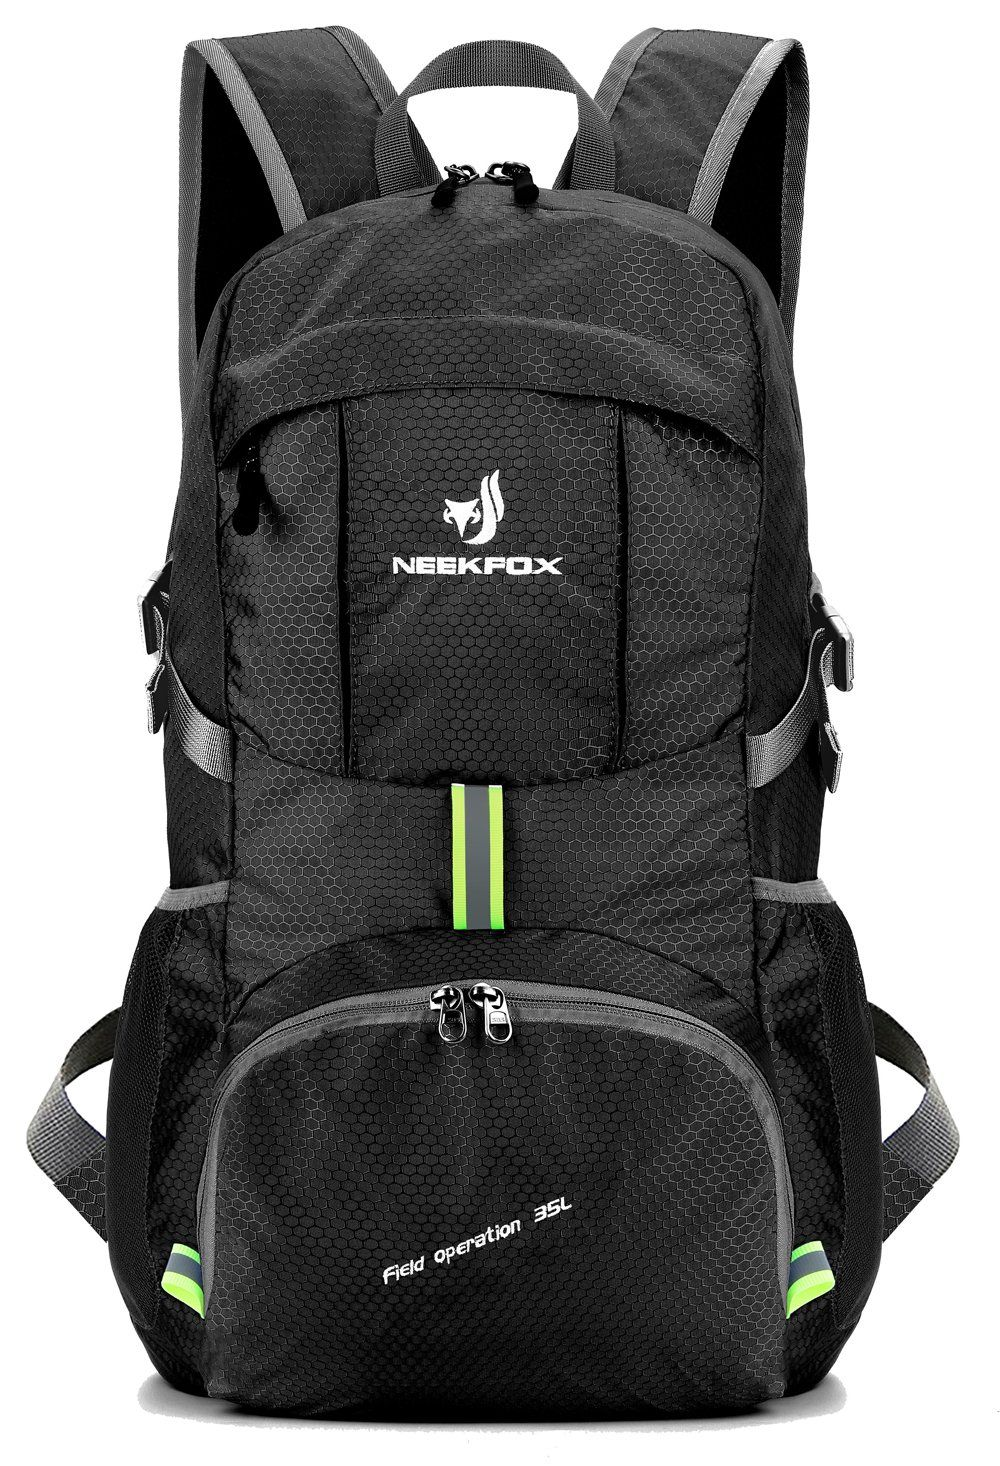 3b3dd874af NEEKFOX Lightweight Packable Backpack